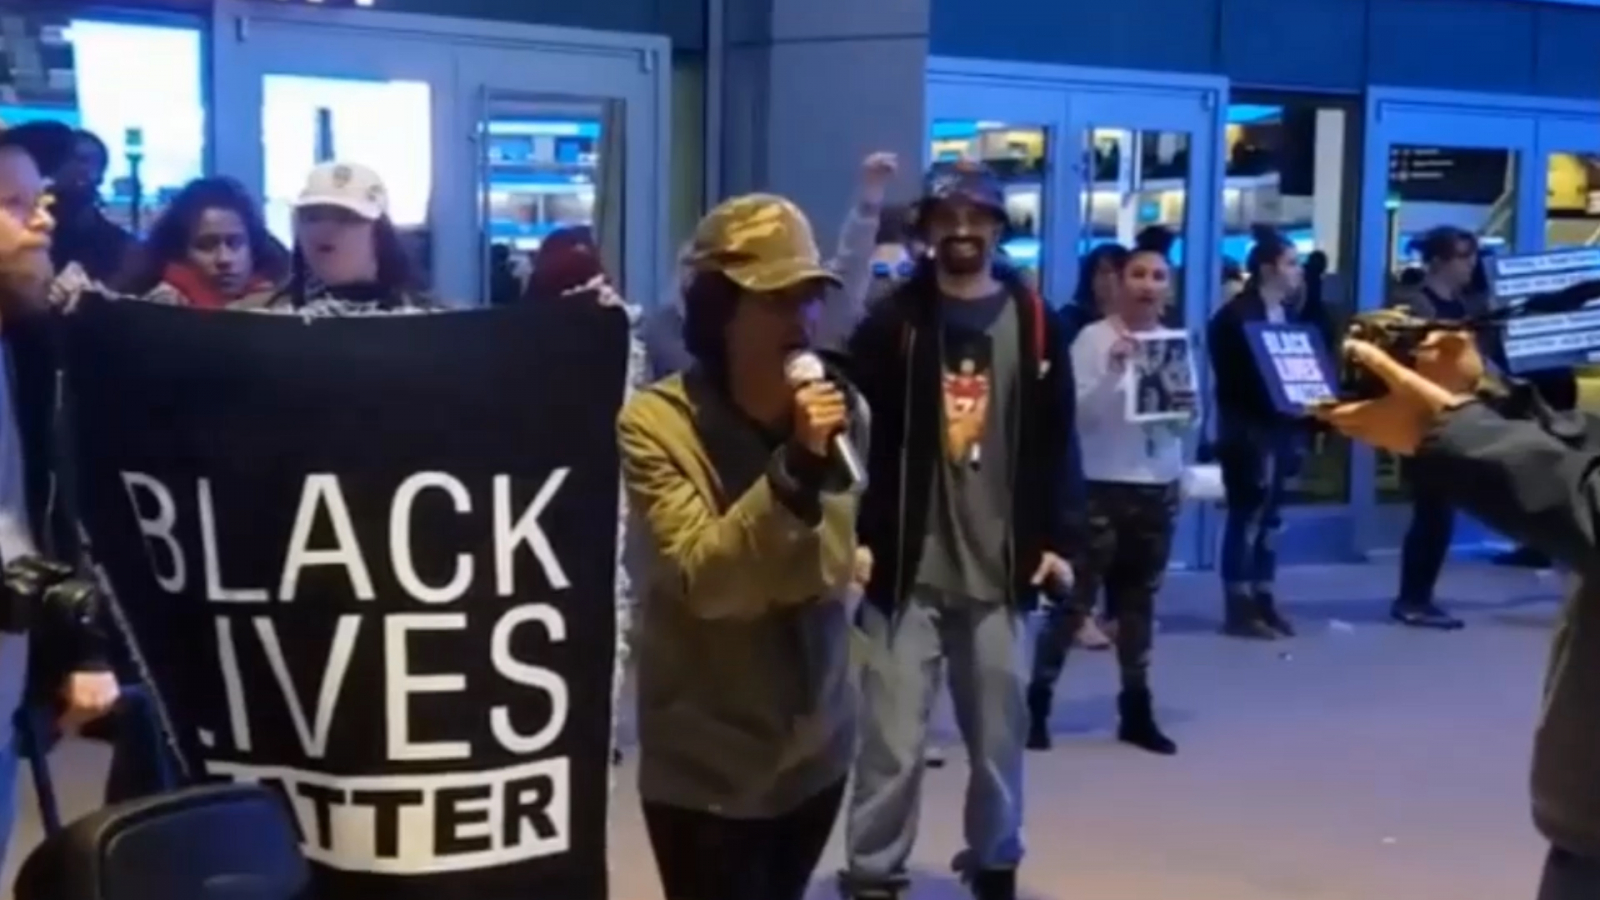 protesters-prevent-ticket-holders-from-watching-nba-game